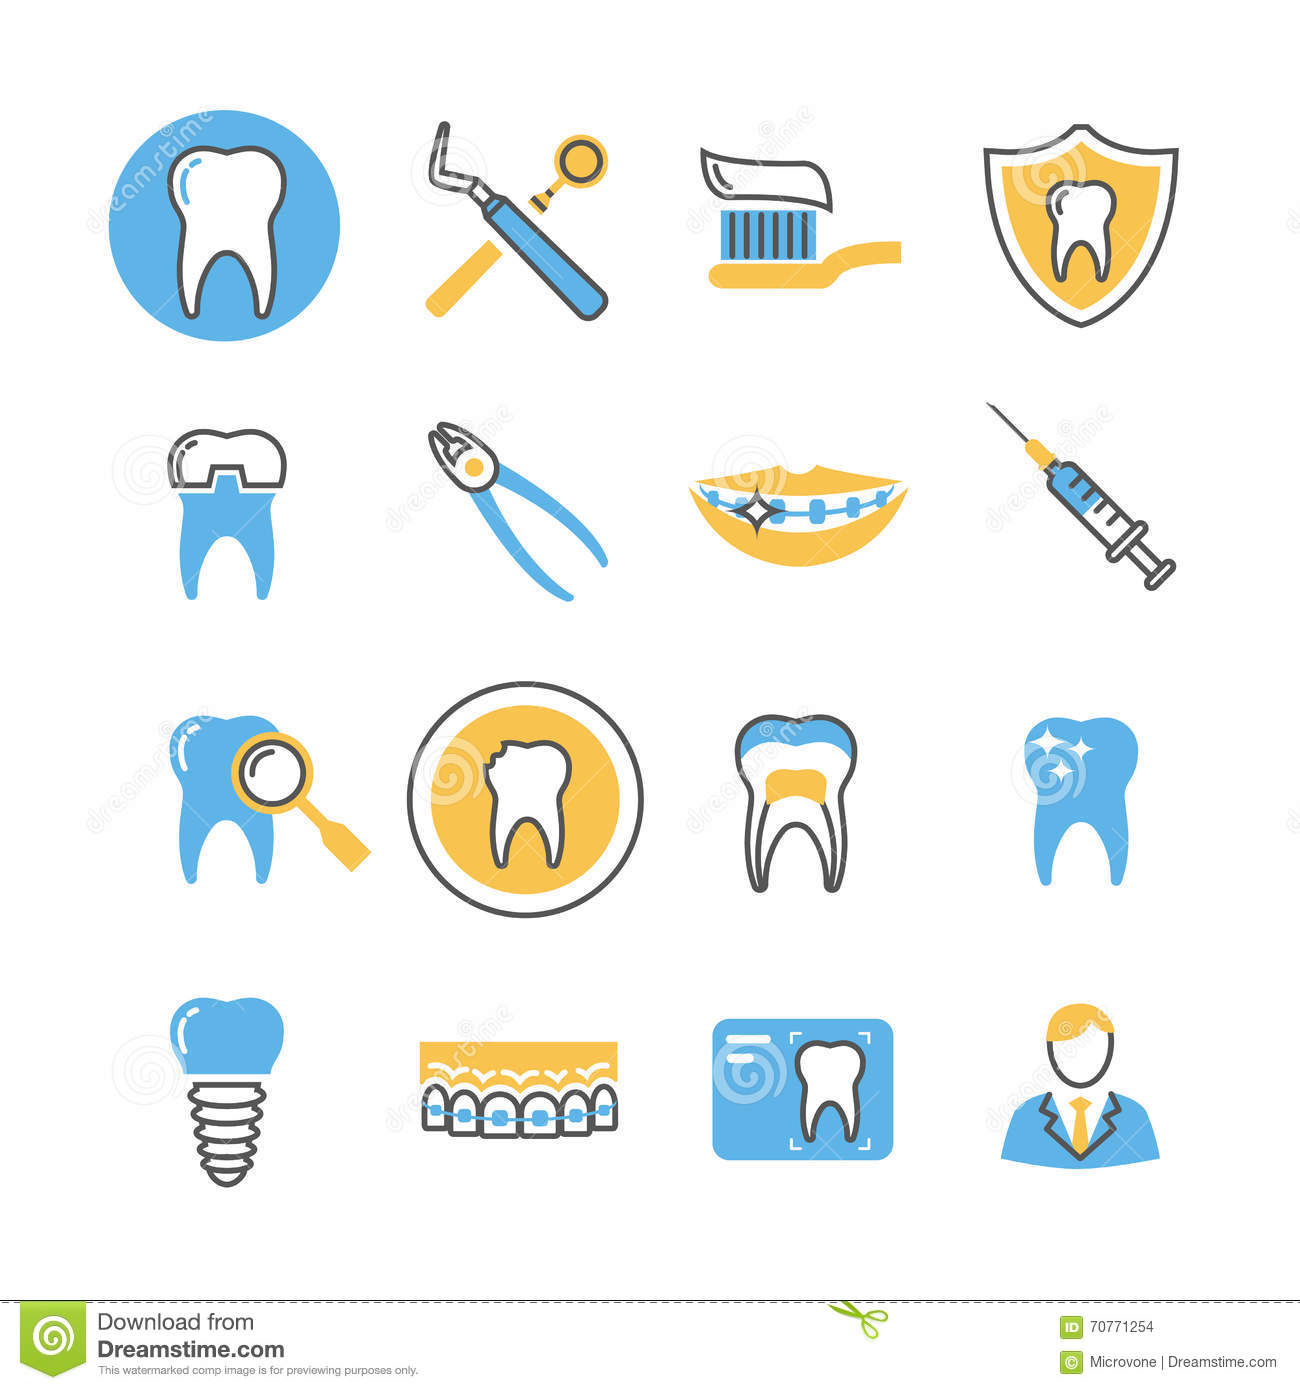 Dental Care Services Equipment And Products Linear Vector Icons With Color Elements